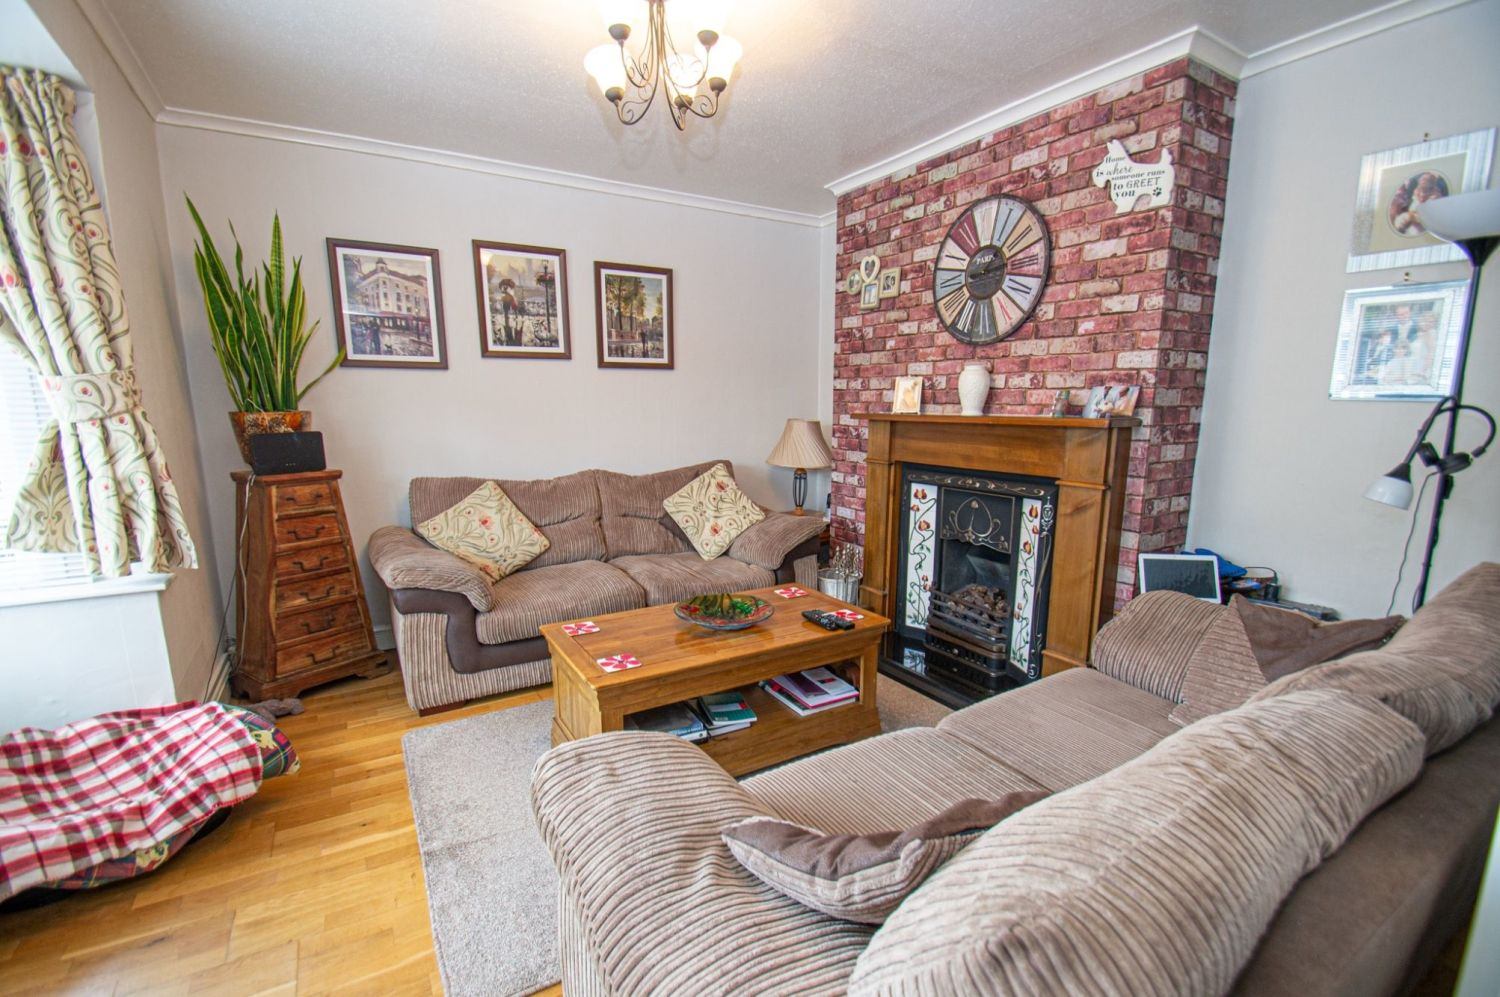 4 bed semi-detached for sale in Wheatcroft Close, Halesowen 3